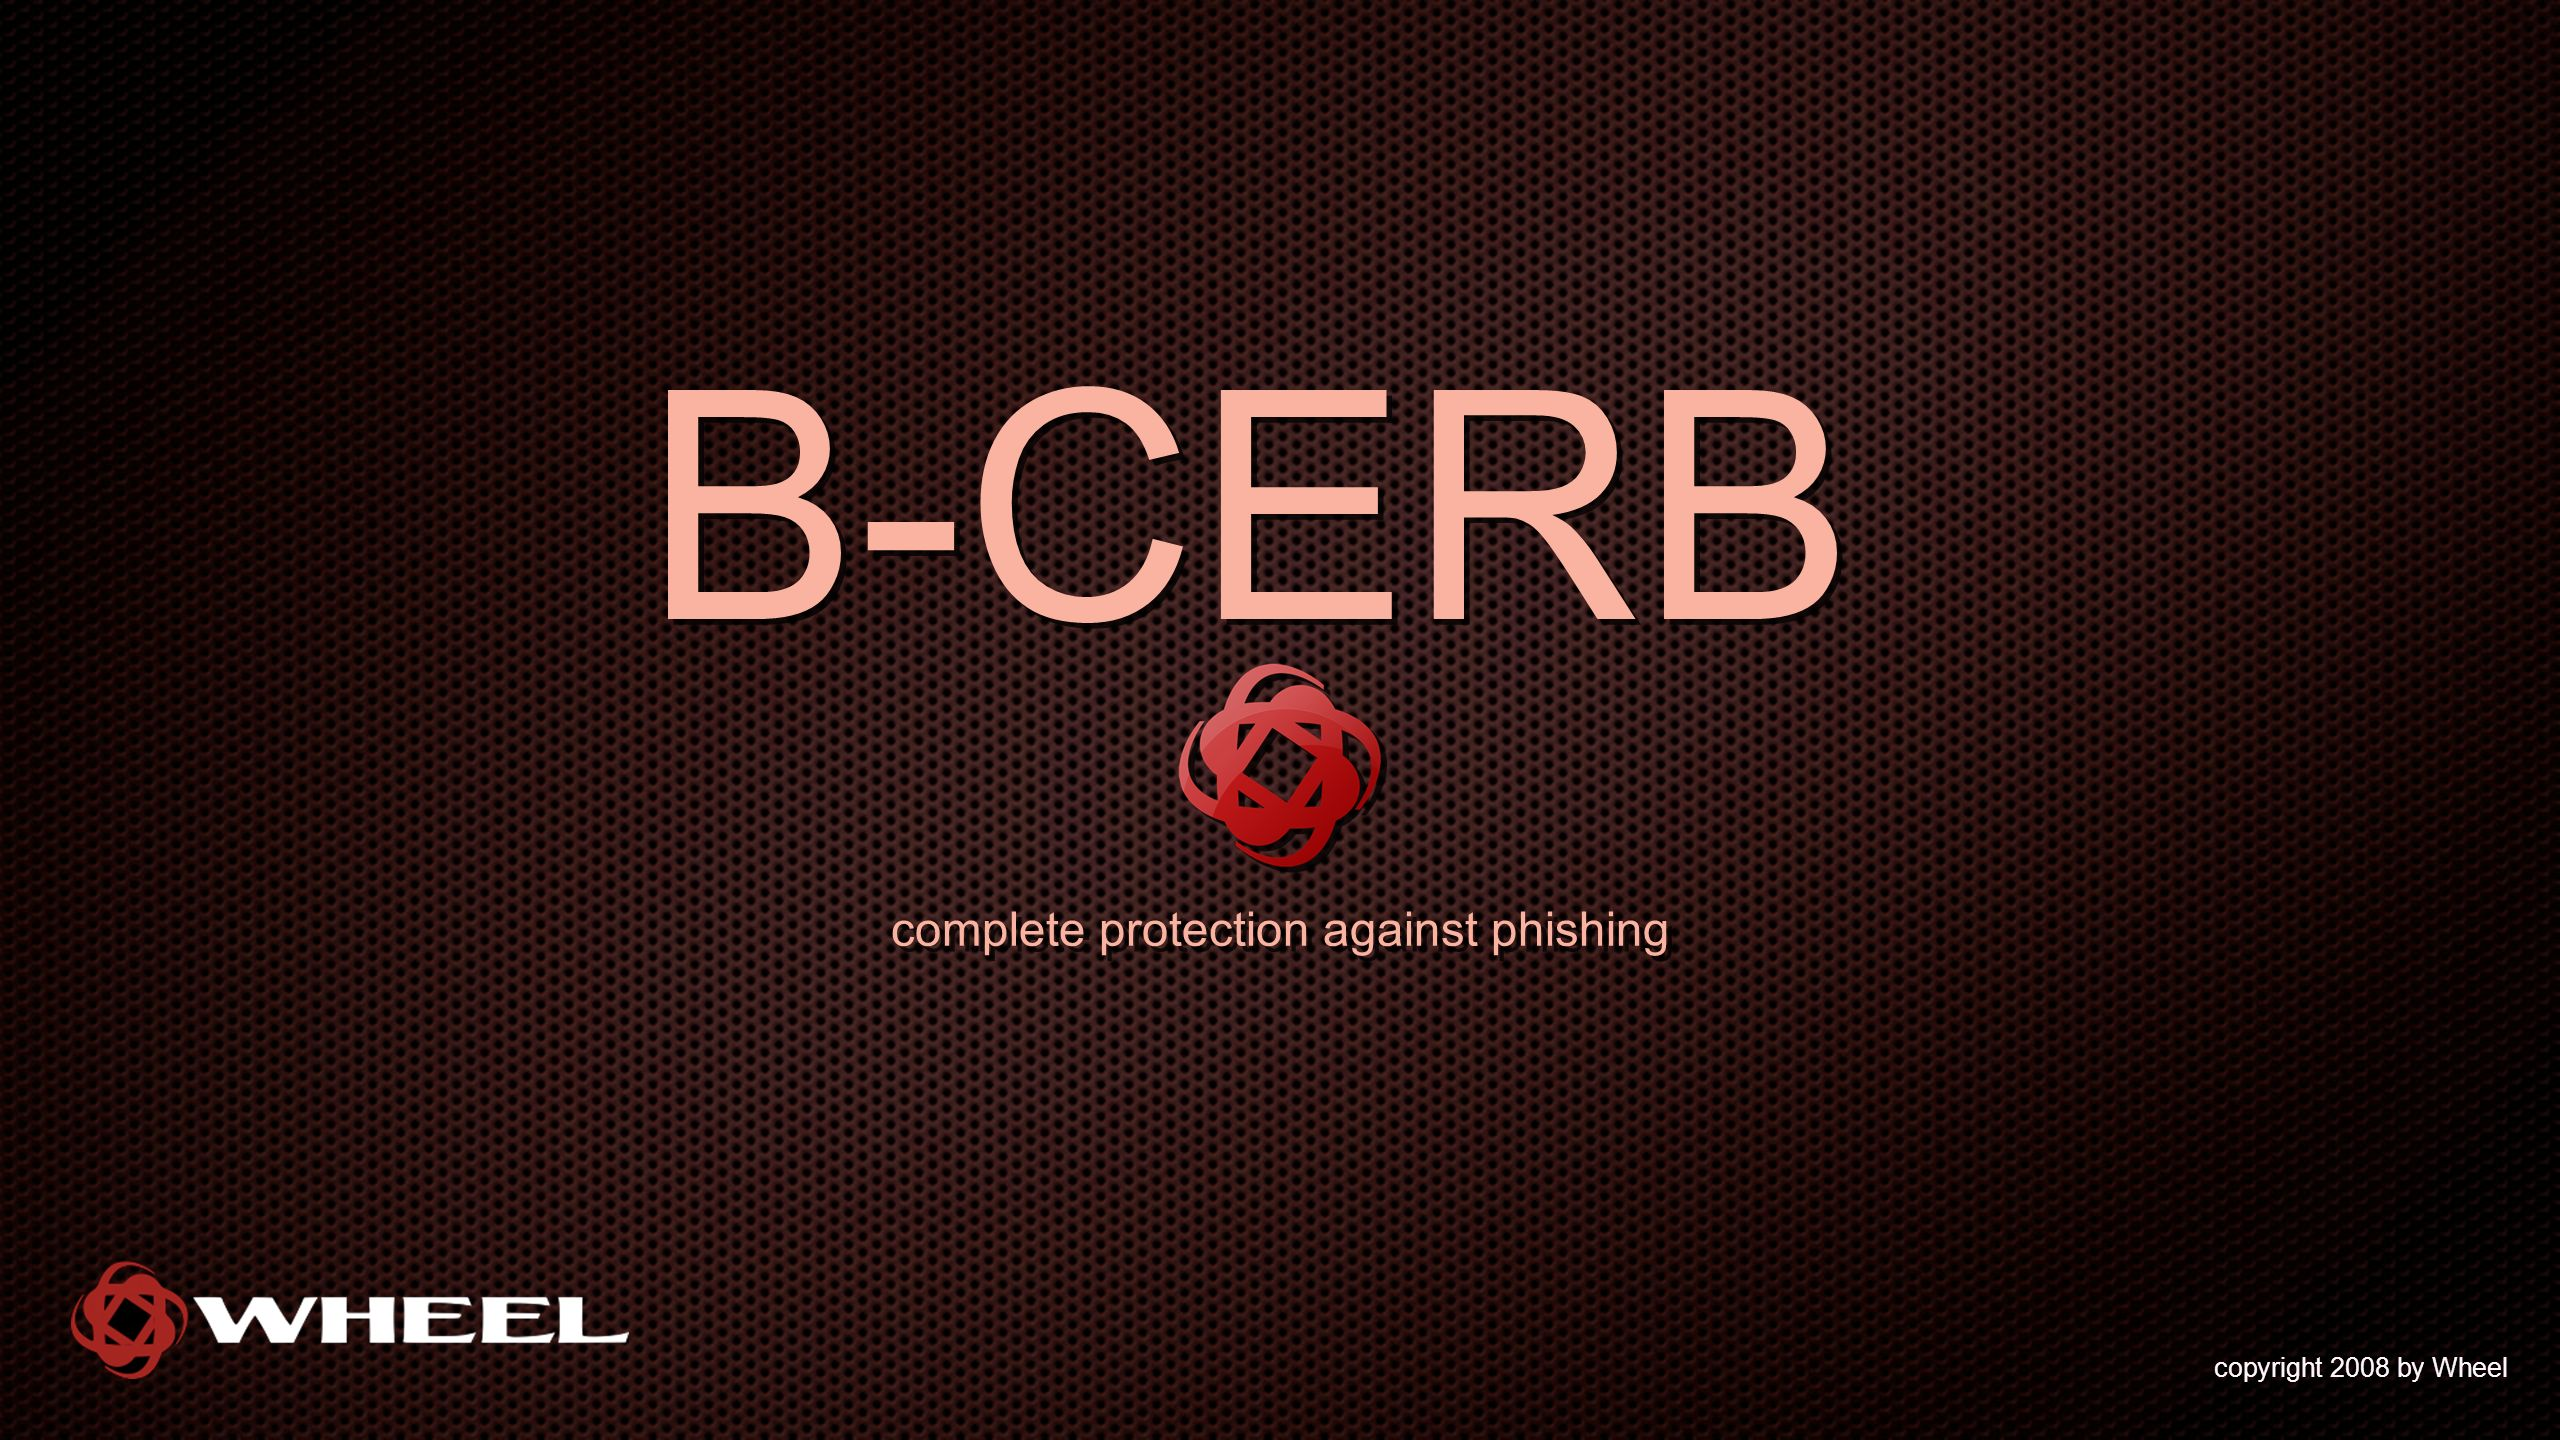 B-CERB complete protection against phishing copyright 2008 by Wheel